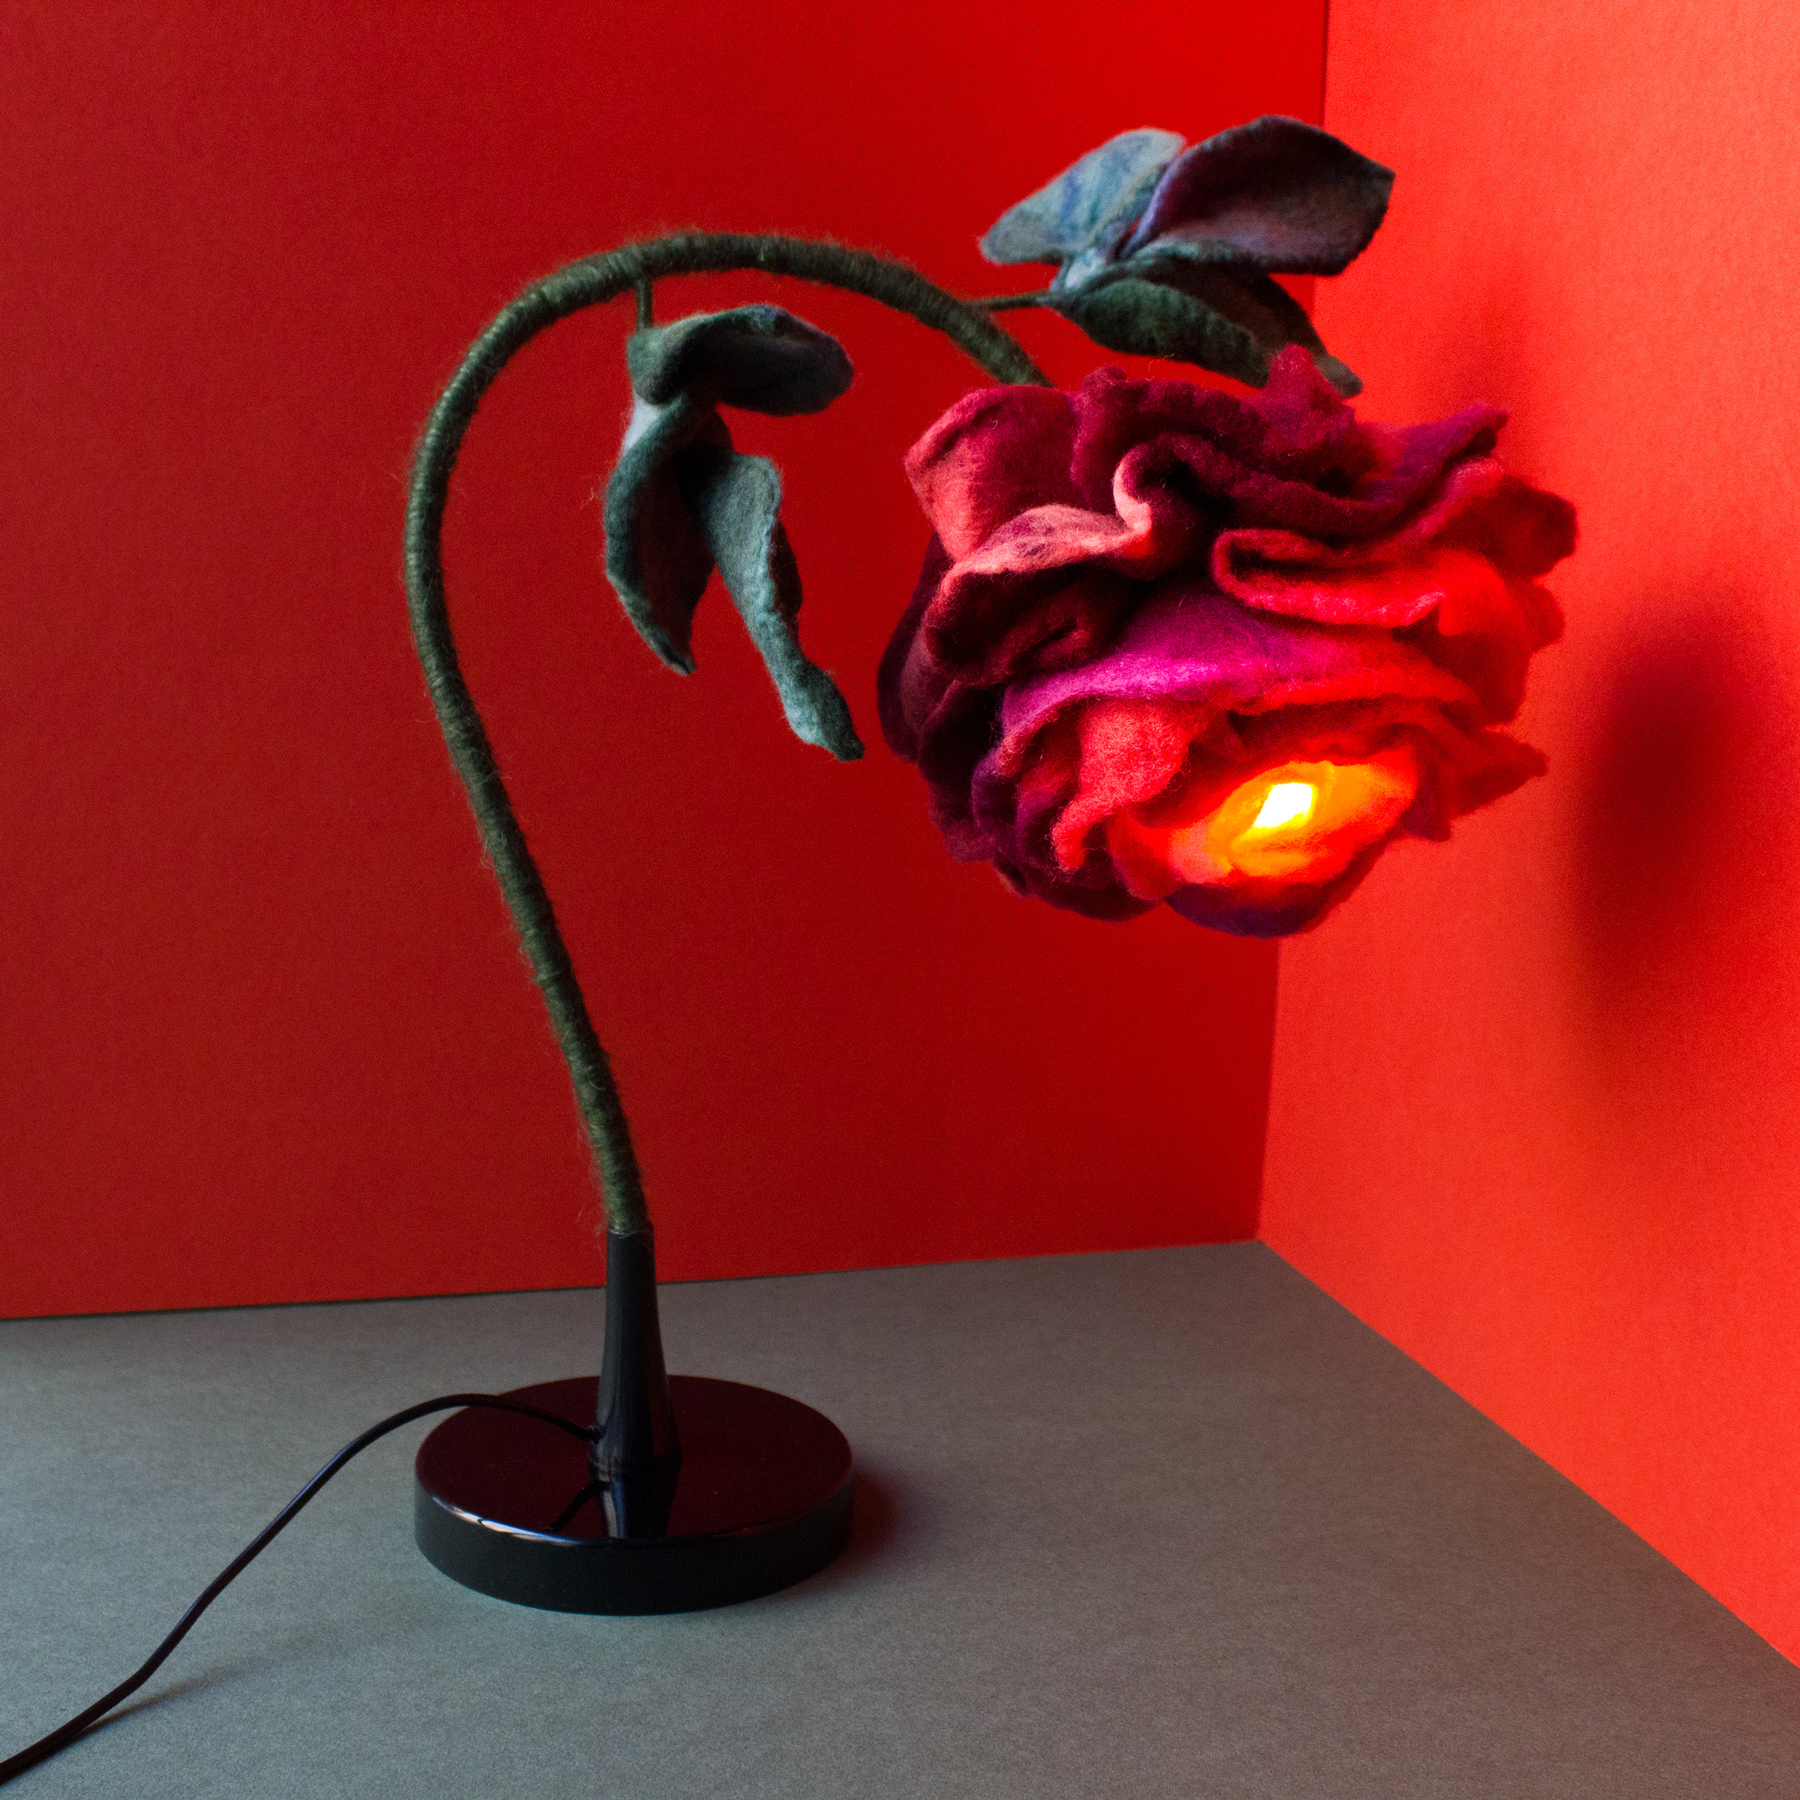 felt-flower-lamp_Cherry-Rose_Adelya-Tumasyeva_3.jpg